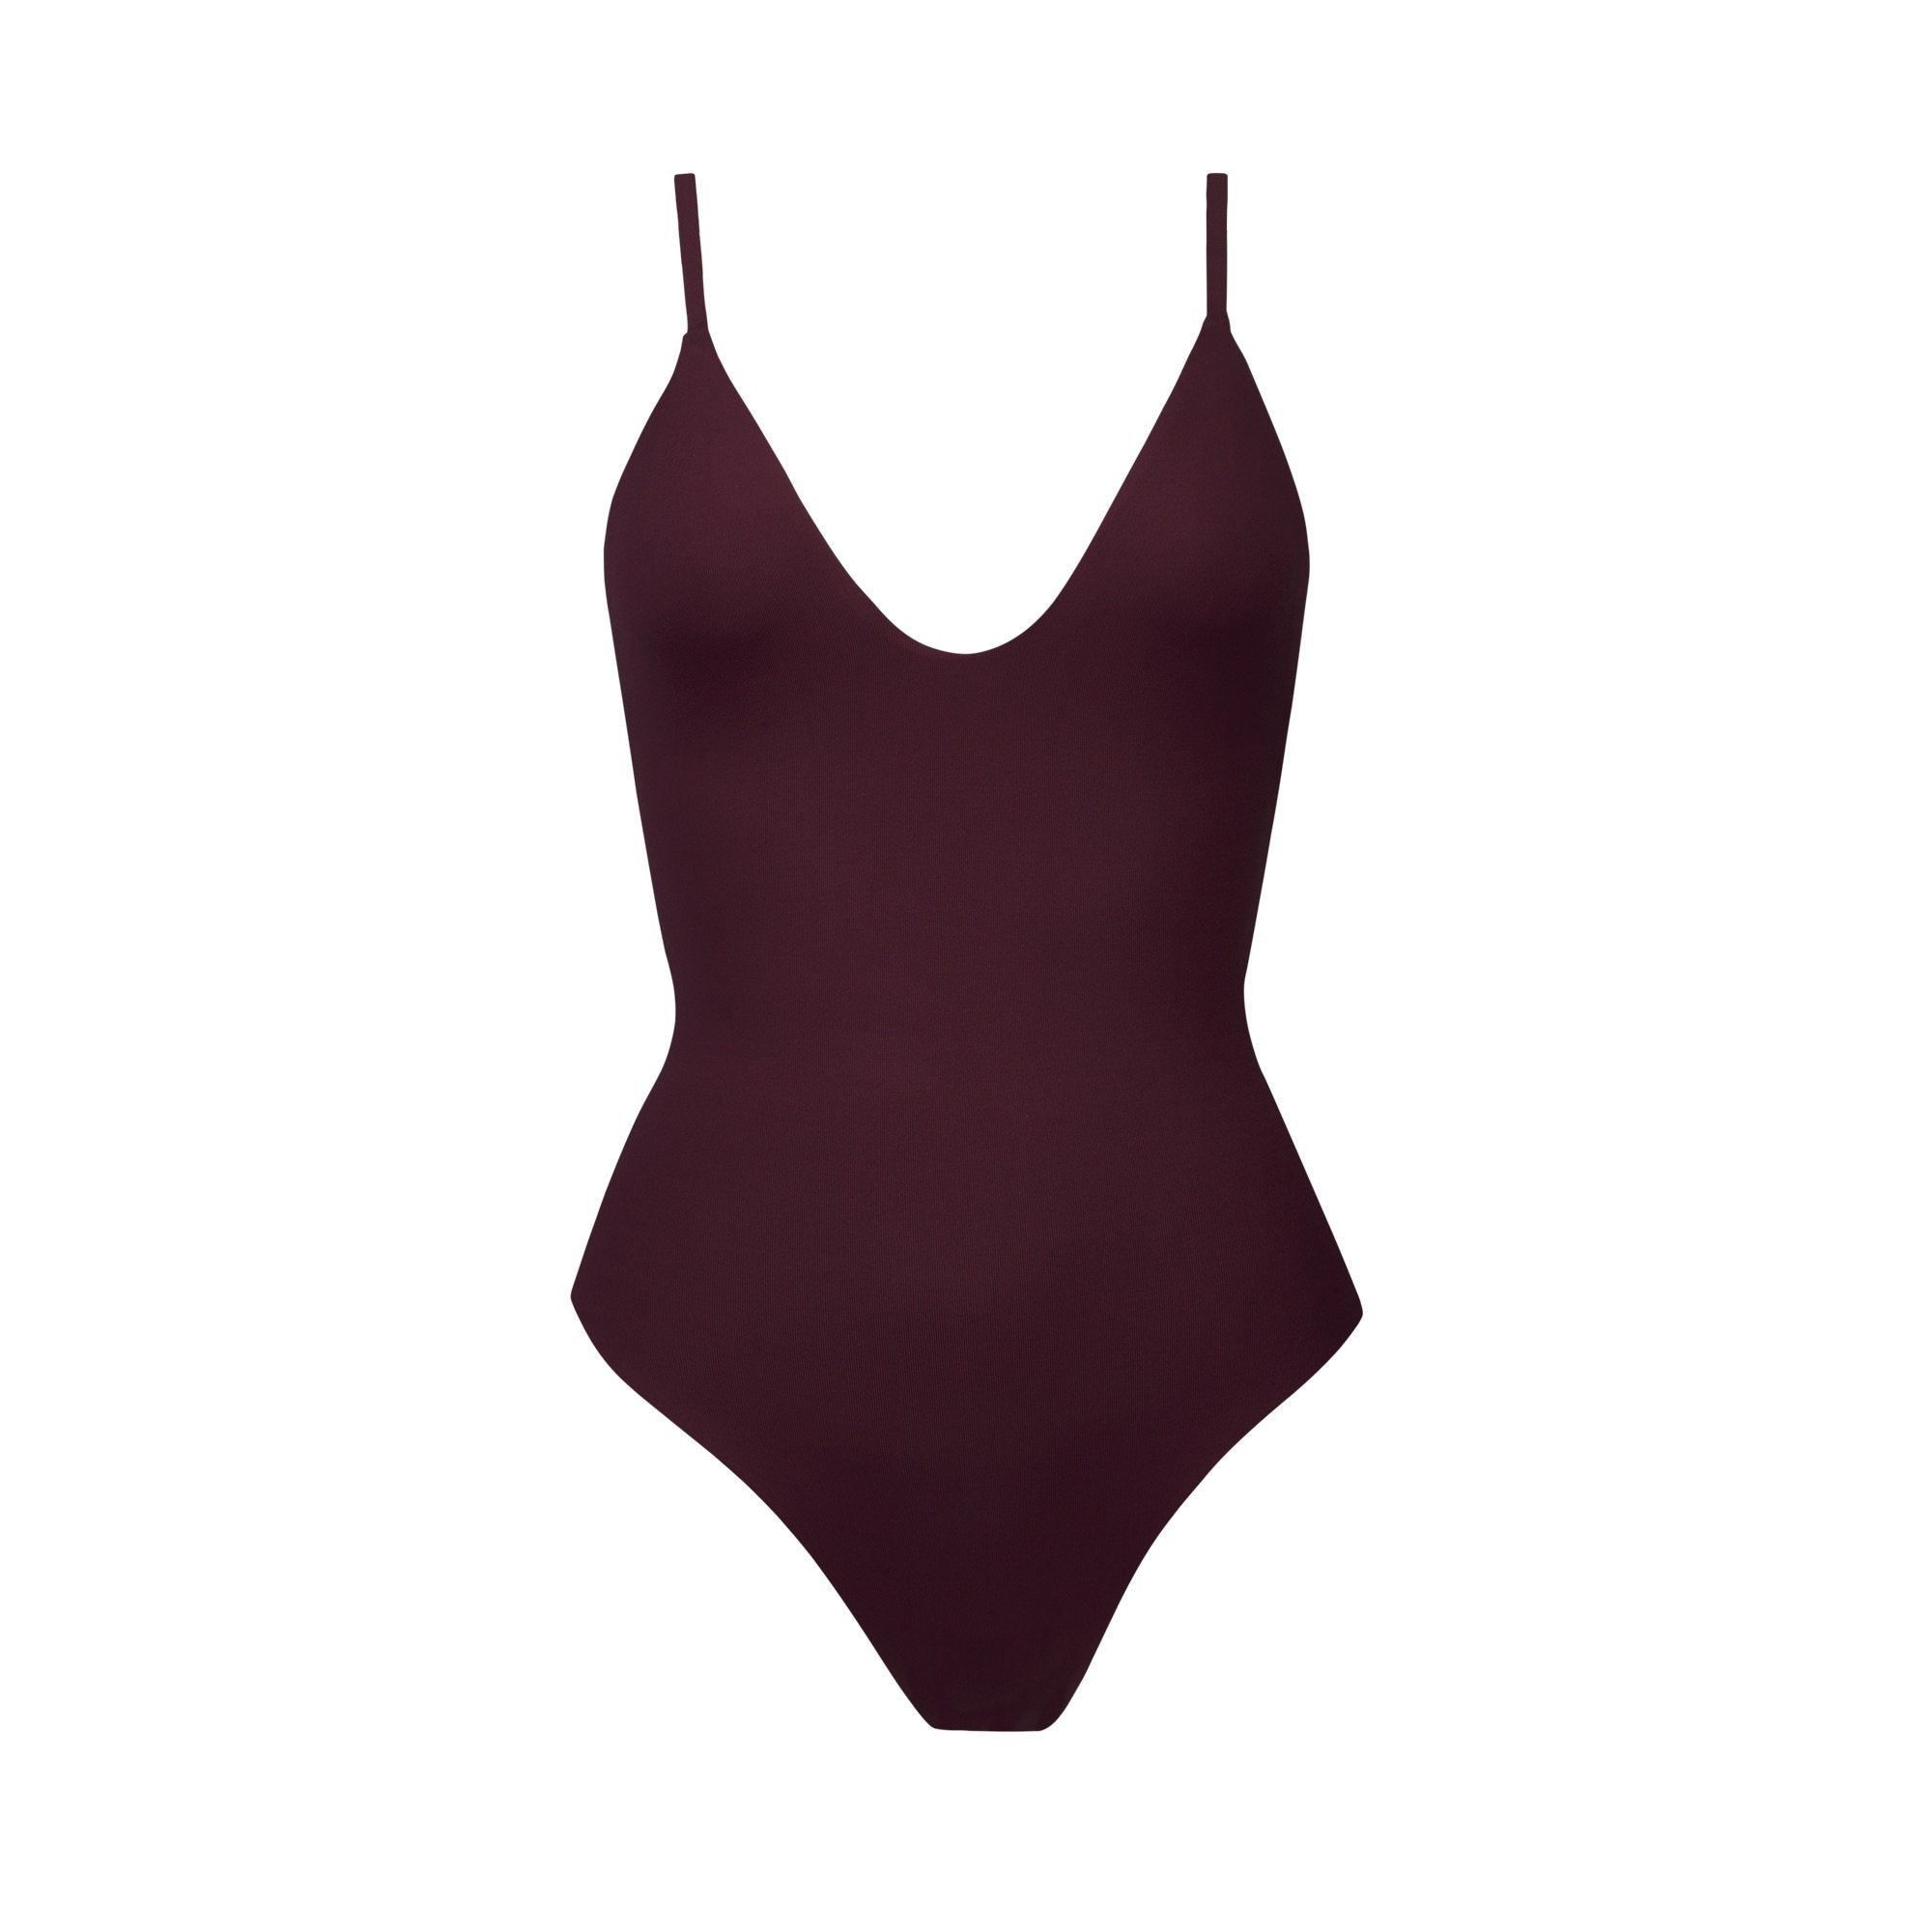 Maze One-Piece in Maroon | Beachwear | Tuhkana Swimwear | [product_tag] - Fair Bazaar Ethical Living